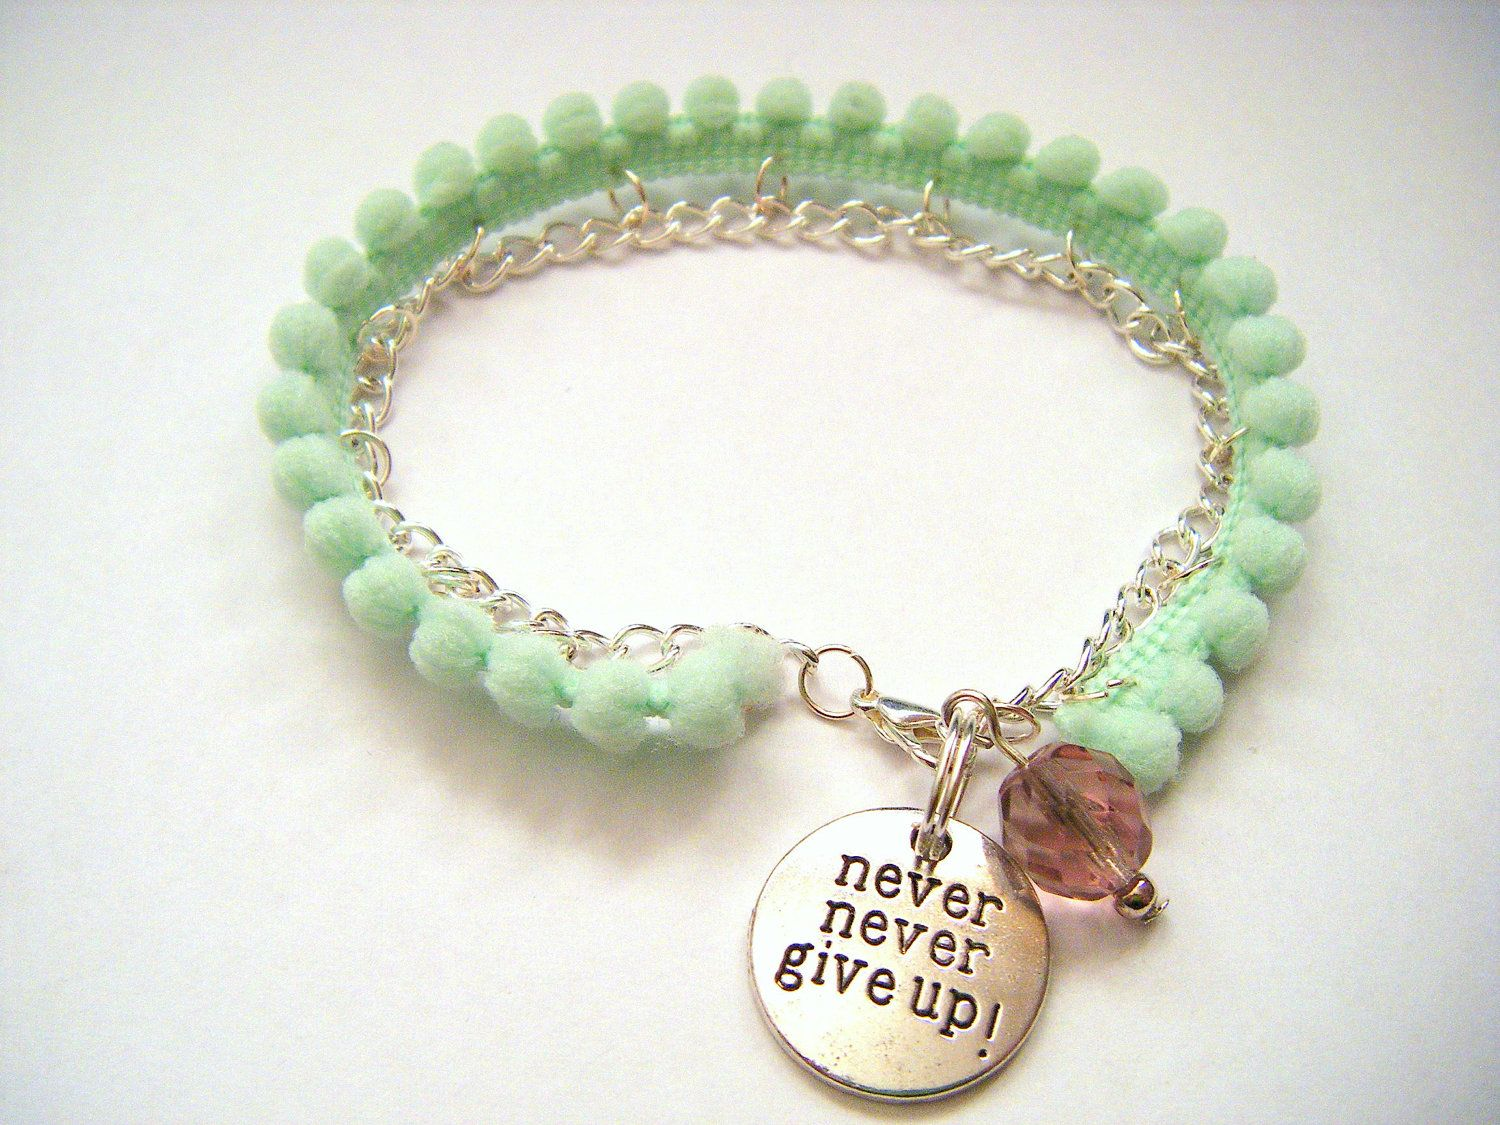 Mint Green Pom Pom bracelet - Raising mental health awareness. £8.00, via Etsy.